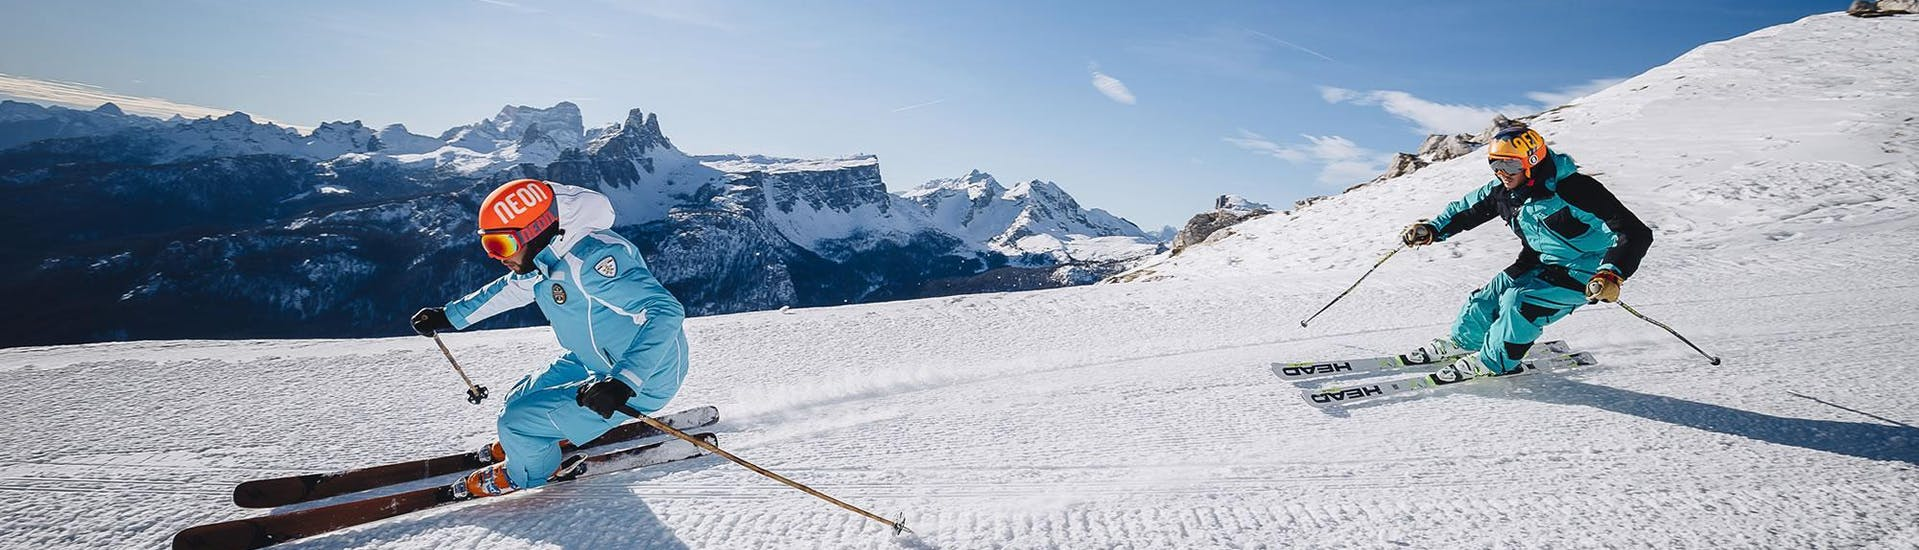 A ski instructor is leading the way down a ski slope in the ski resort of Cortina d'Ampezzo during one of the Private Ski Lessons for Adults - Beginner organised by the ski school Scuola di Sci e Snowboard Cristallo Cortina.